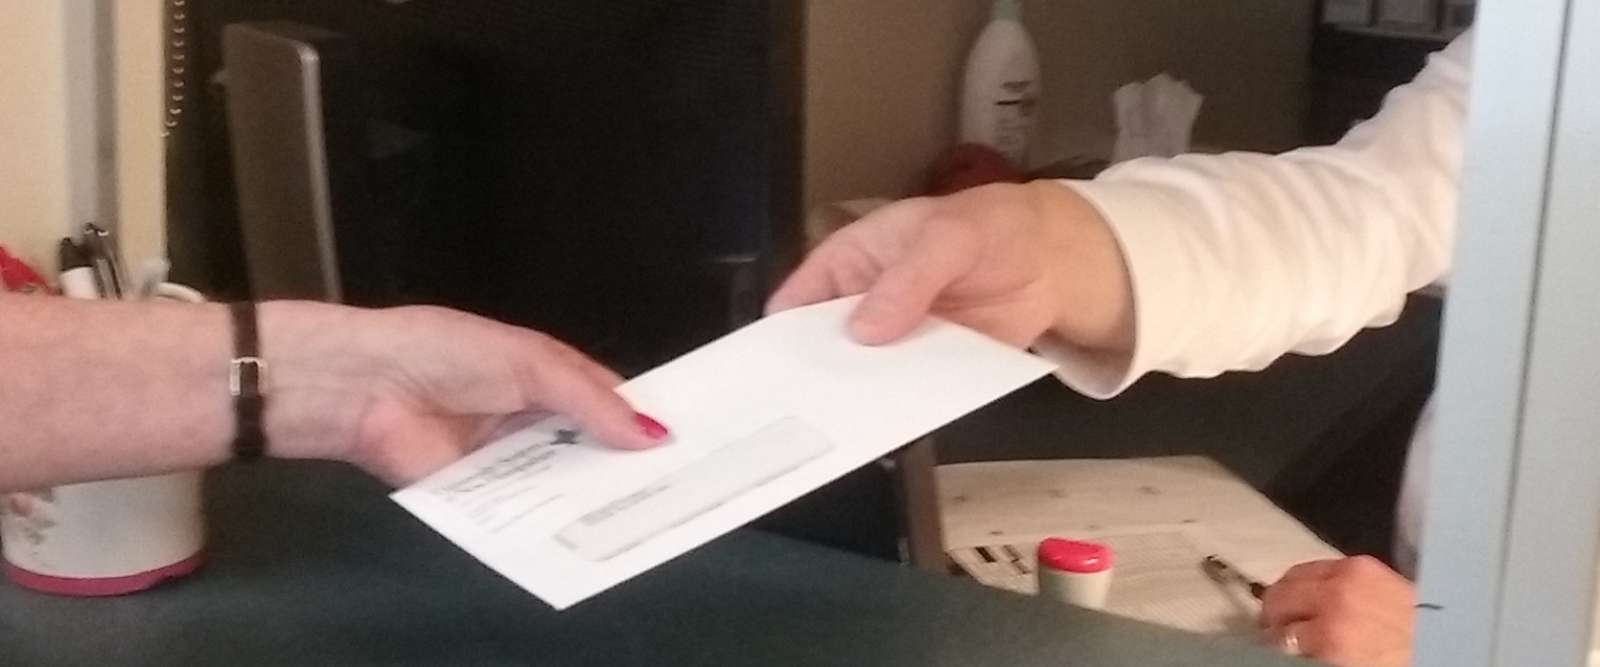 Envelope/Check Being Handed Over